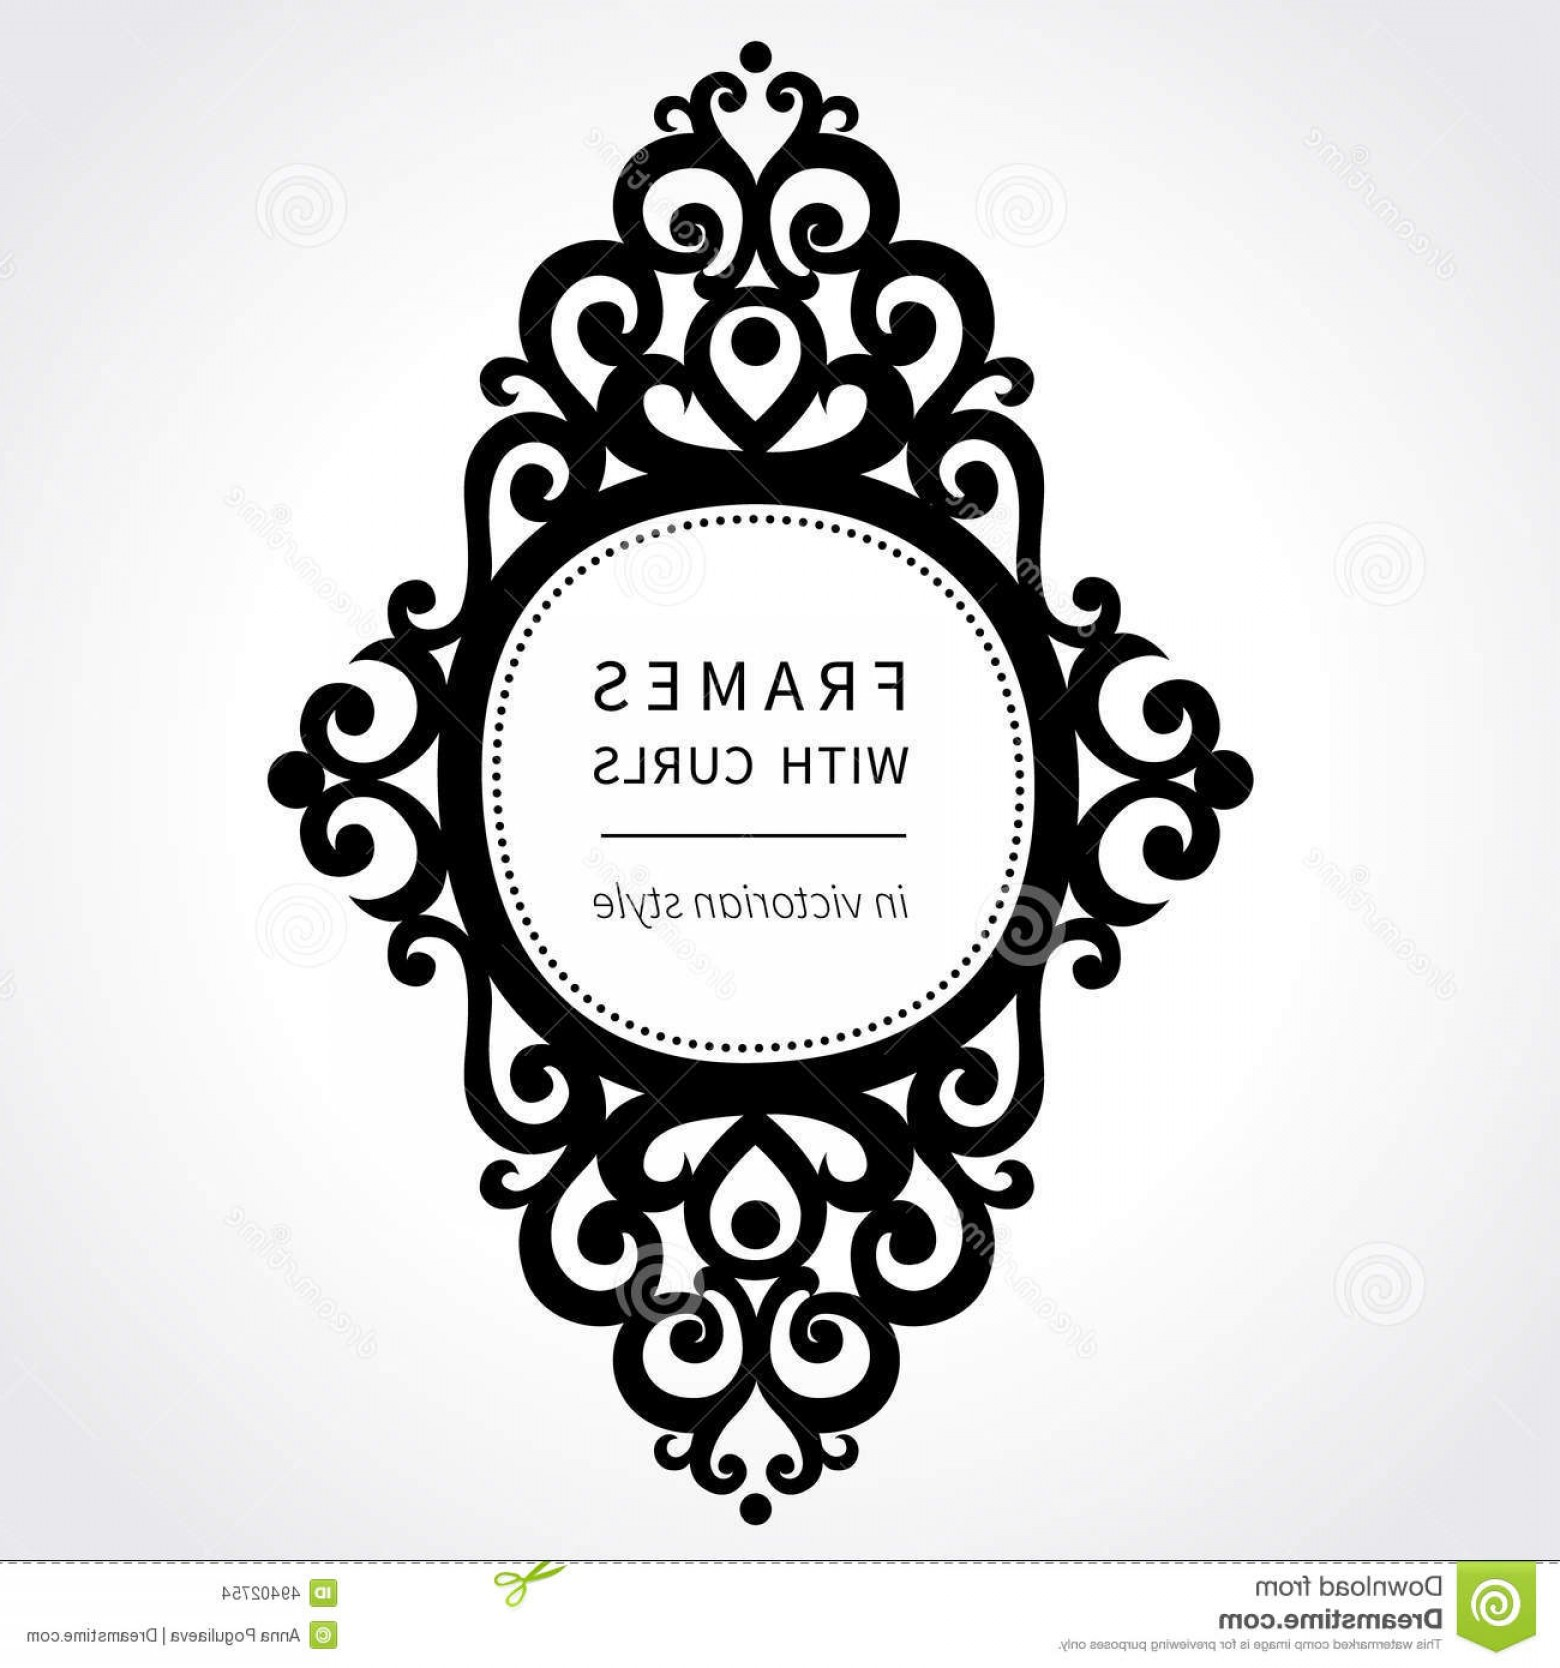 Victorian Style Frame Vector: Stock Illustration Vector Frame Classical Ornament Victorian Style Ornate Element Design Vignettes Your Text Pattern Wedding Image